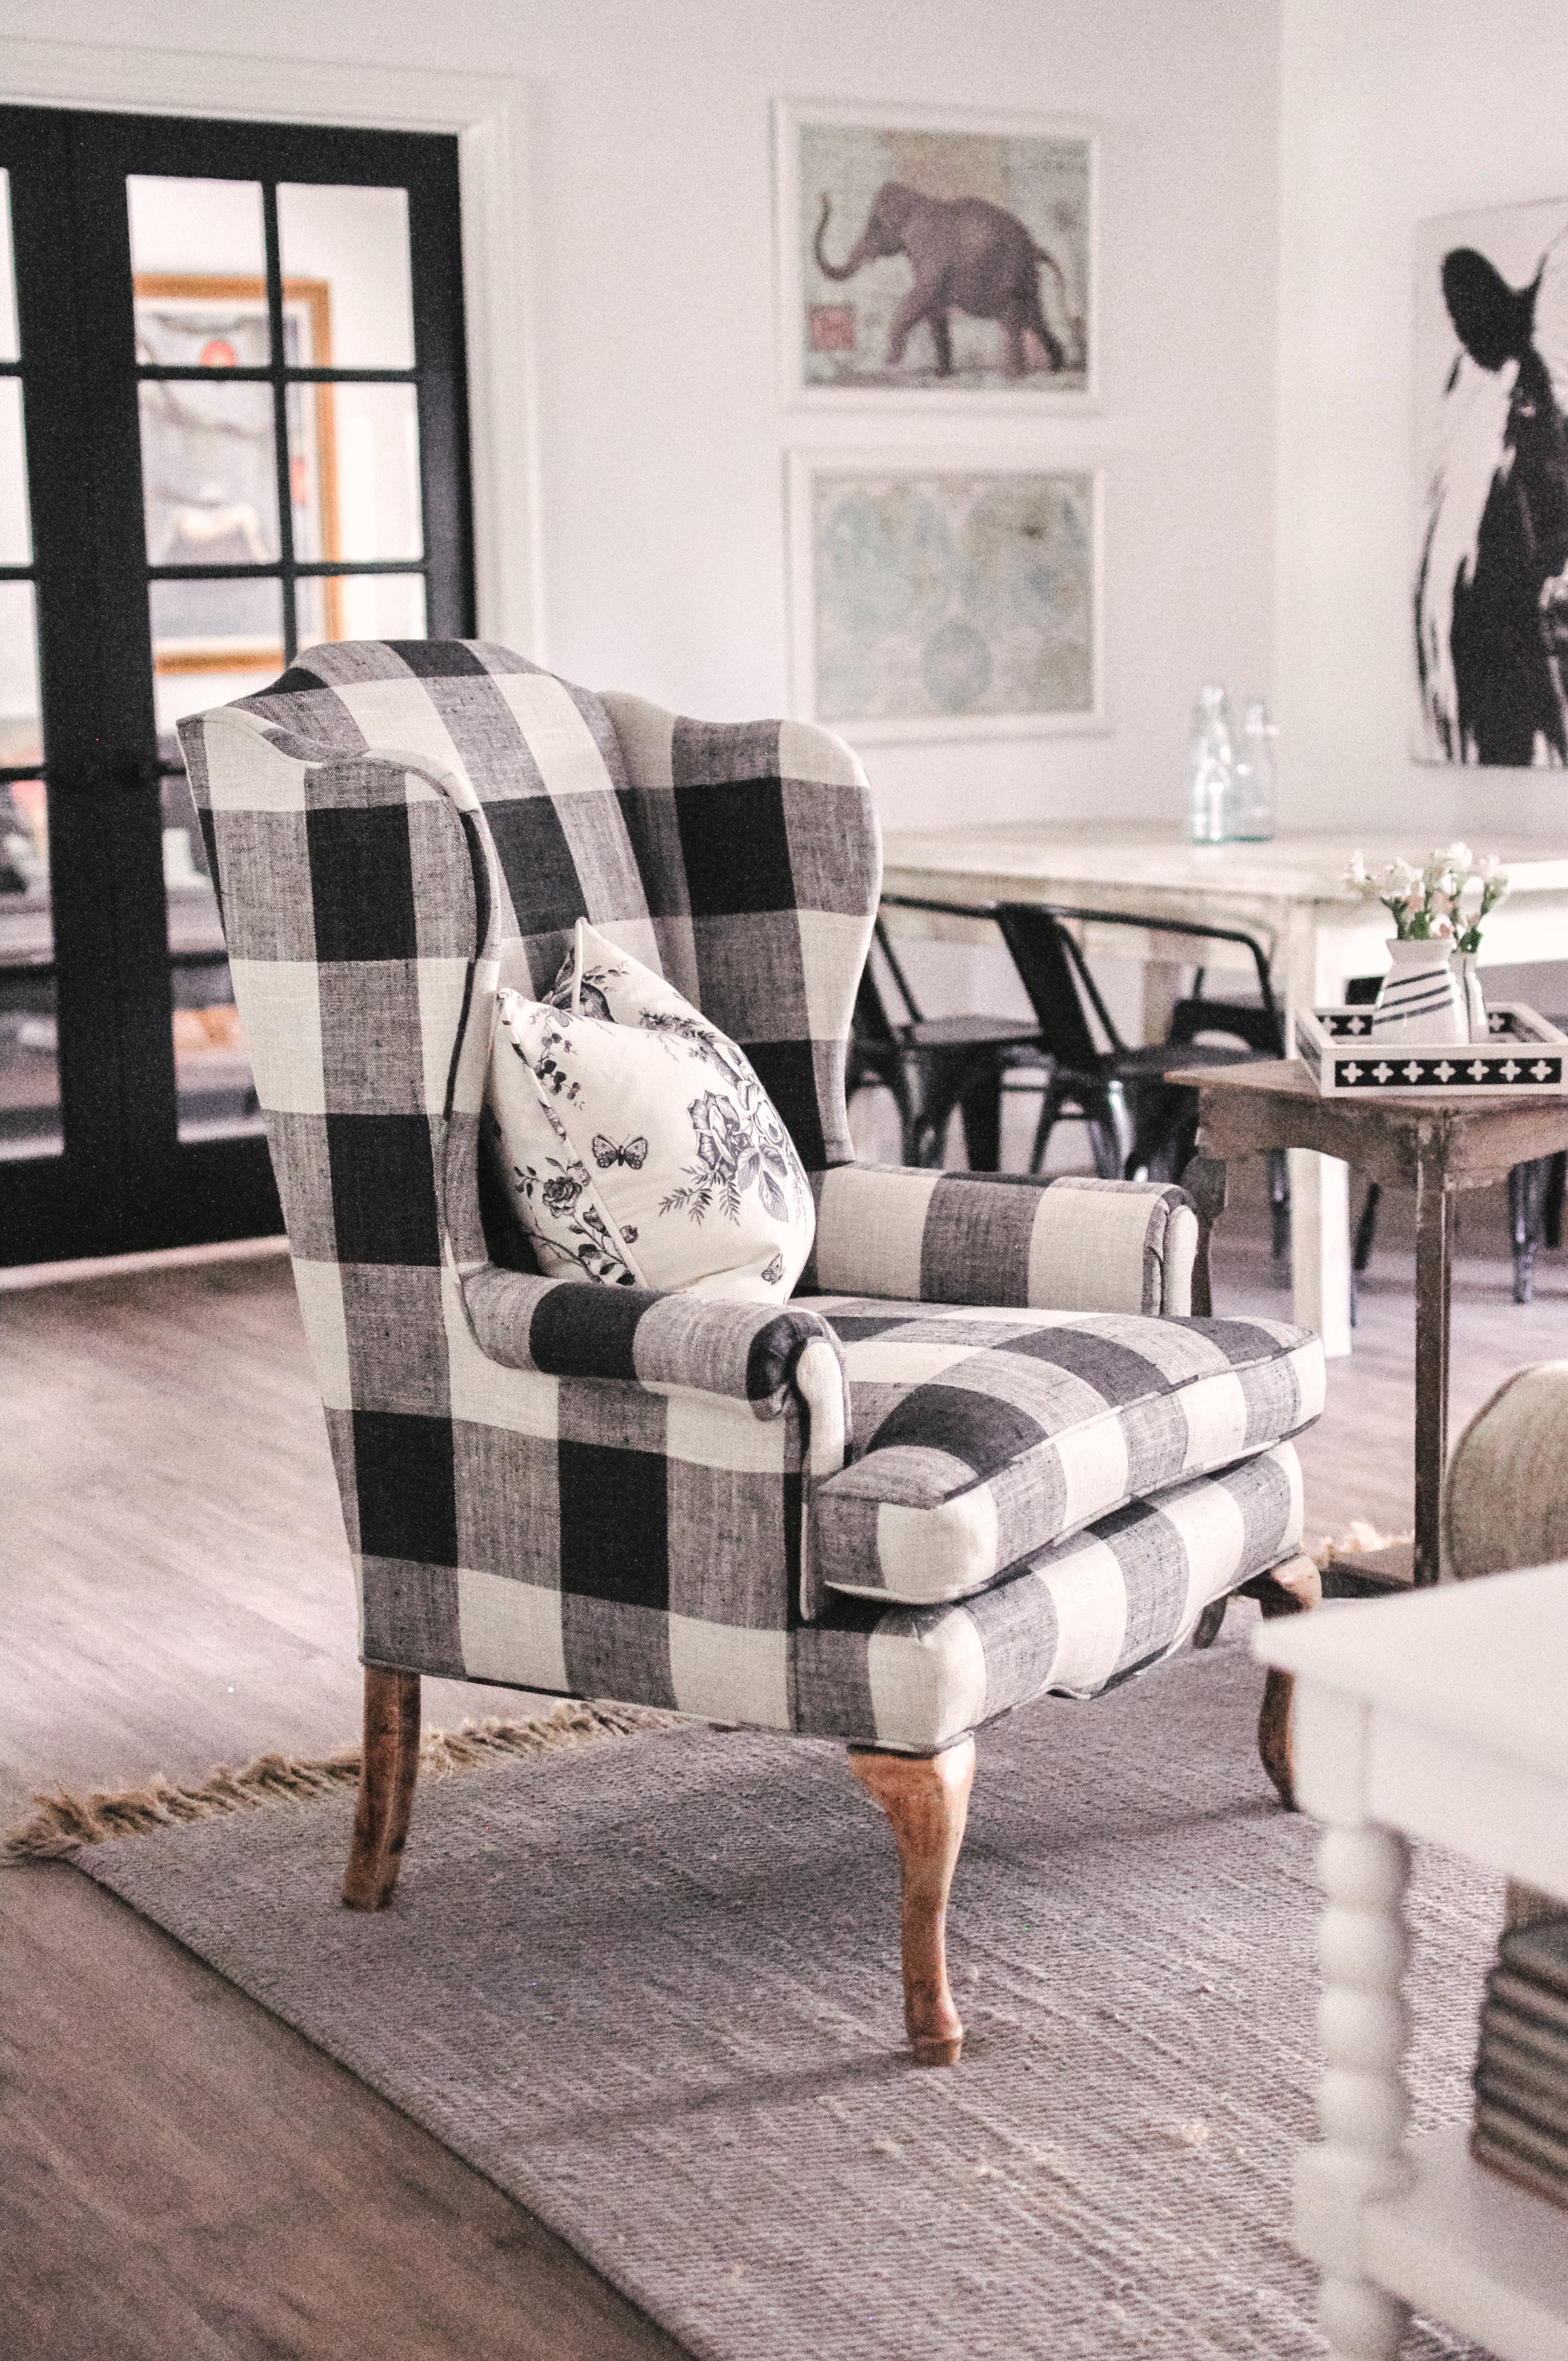 The Easiest Way to Reupholster an Armchair